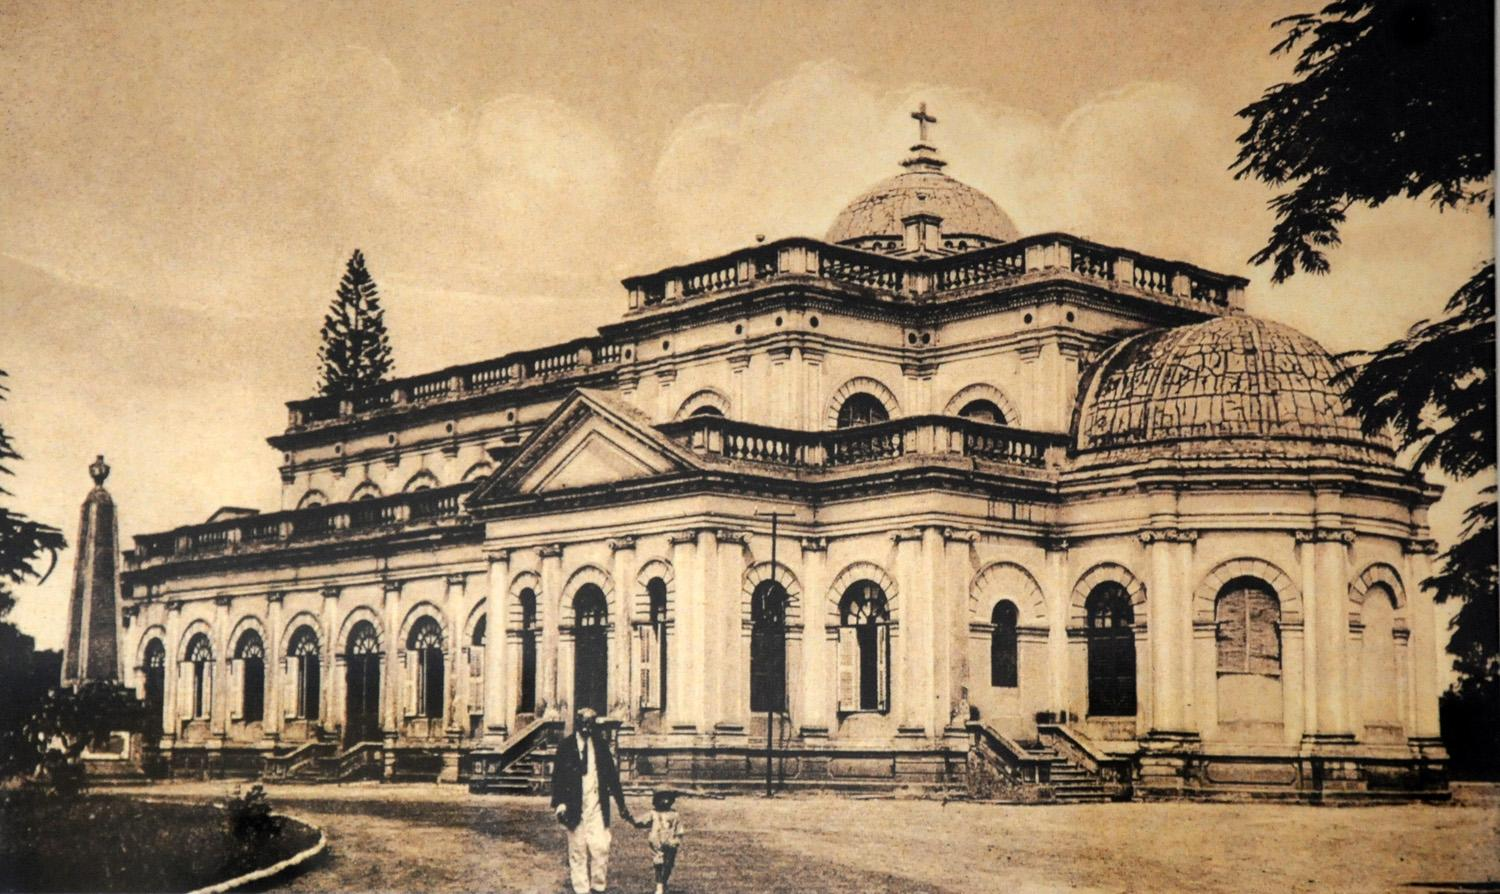 Title: St. Marks Cathedral, Bangalore. (Old Postcard Re-print). Creator: India Post. Source: https://tinyurl.com/yfb6nap4. Licence: Public domain